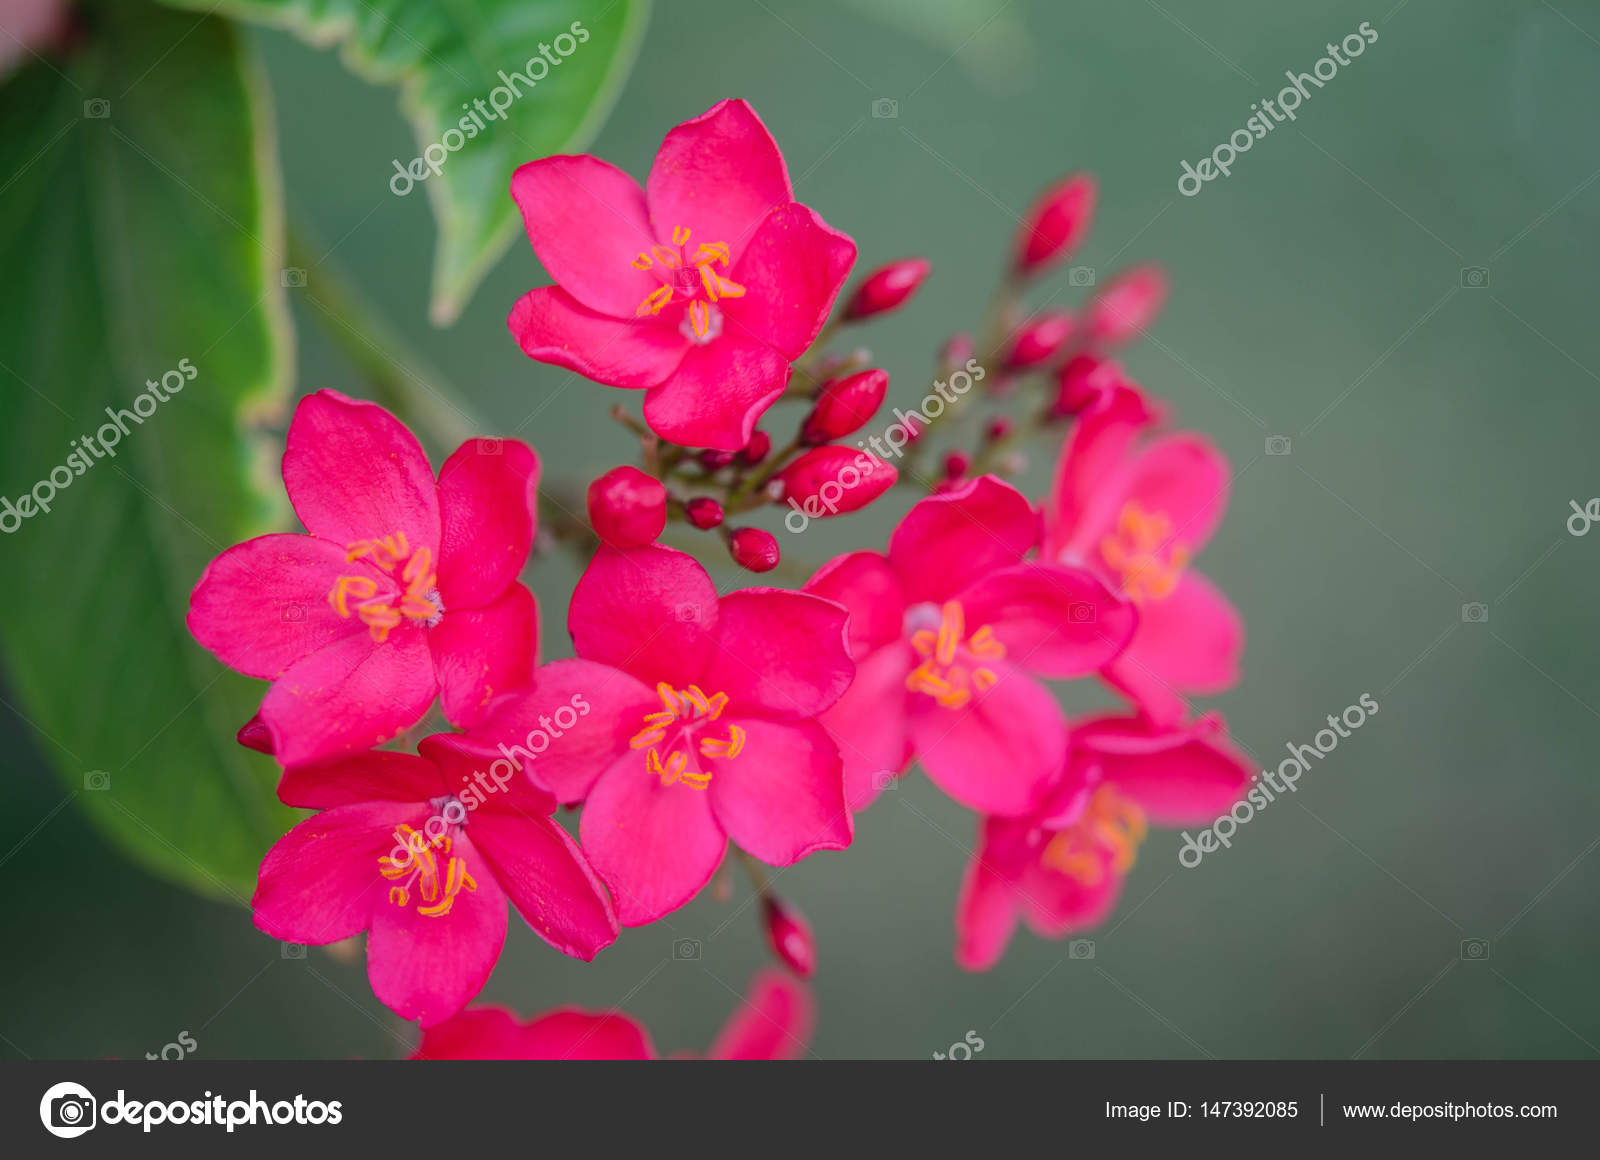 Flowering Bushes With Pink Flowers Stock Photo Soyka564 147392085